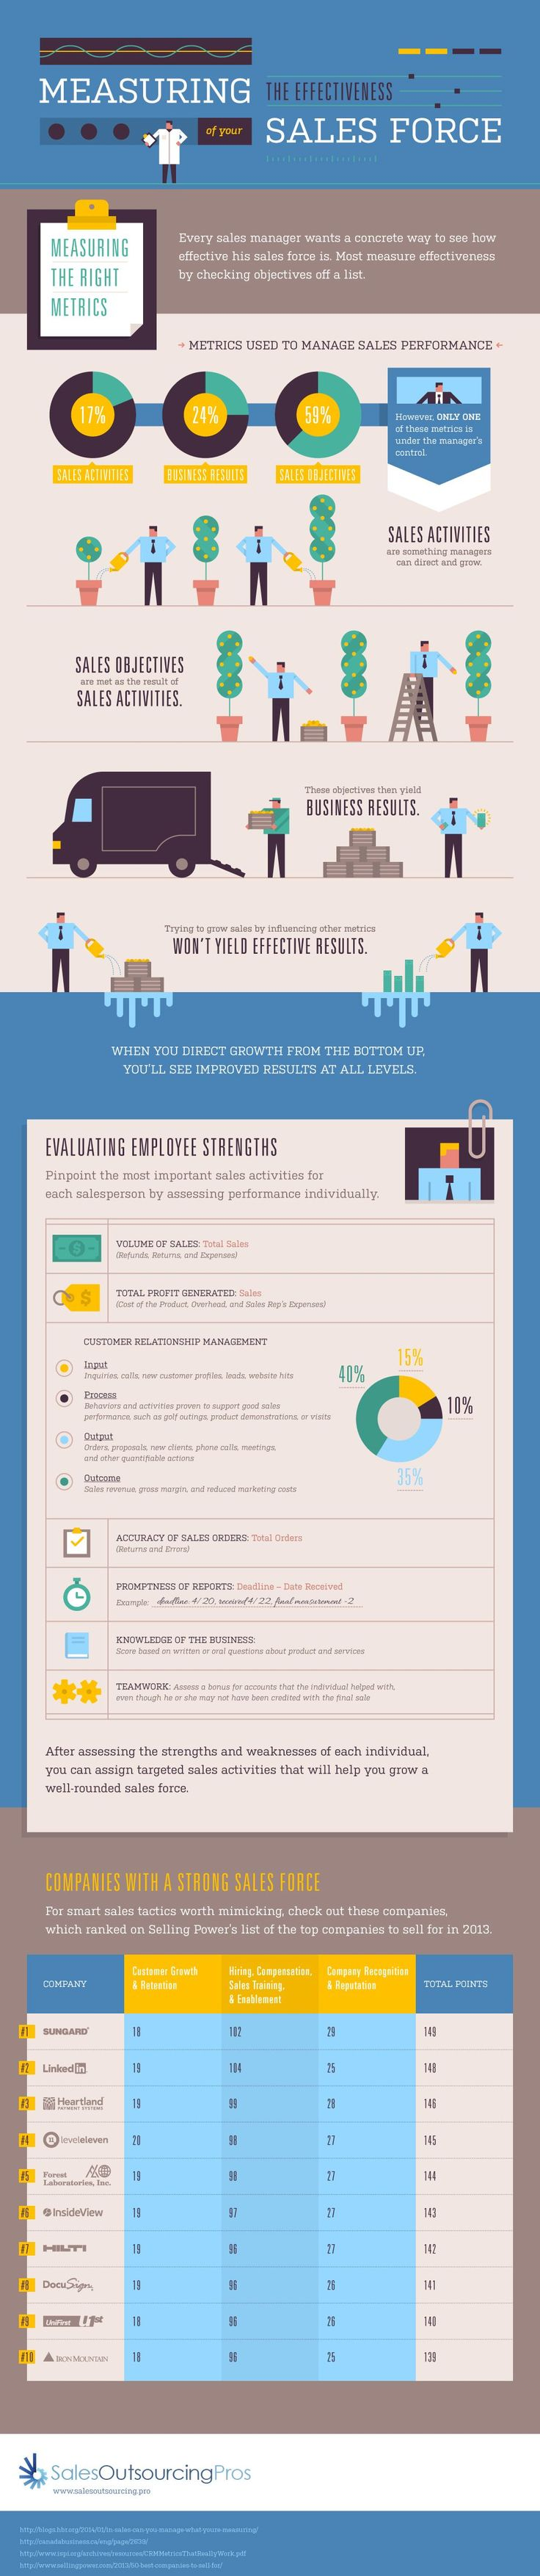 Measuring the Effectiveness of Your Sales Force #Infographic